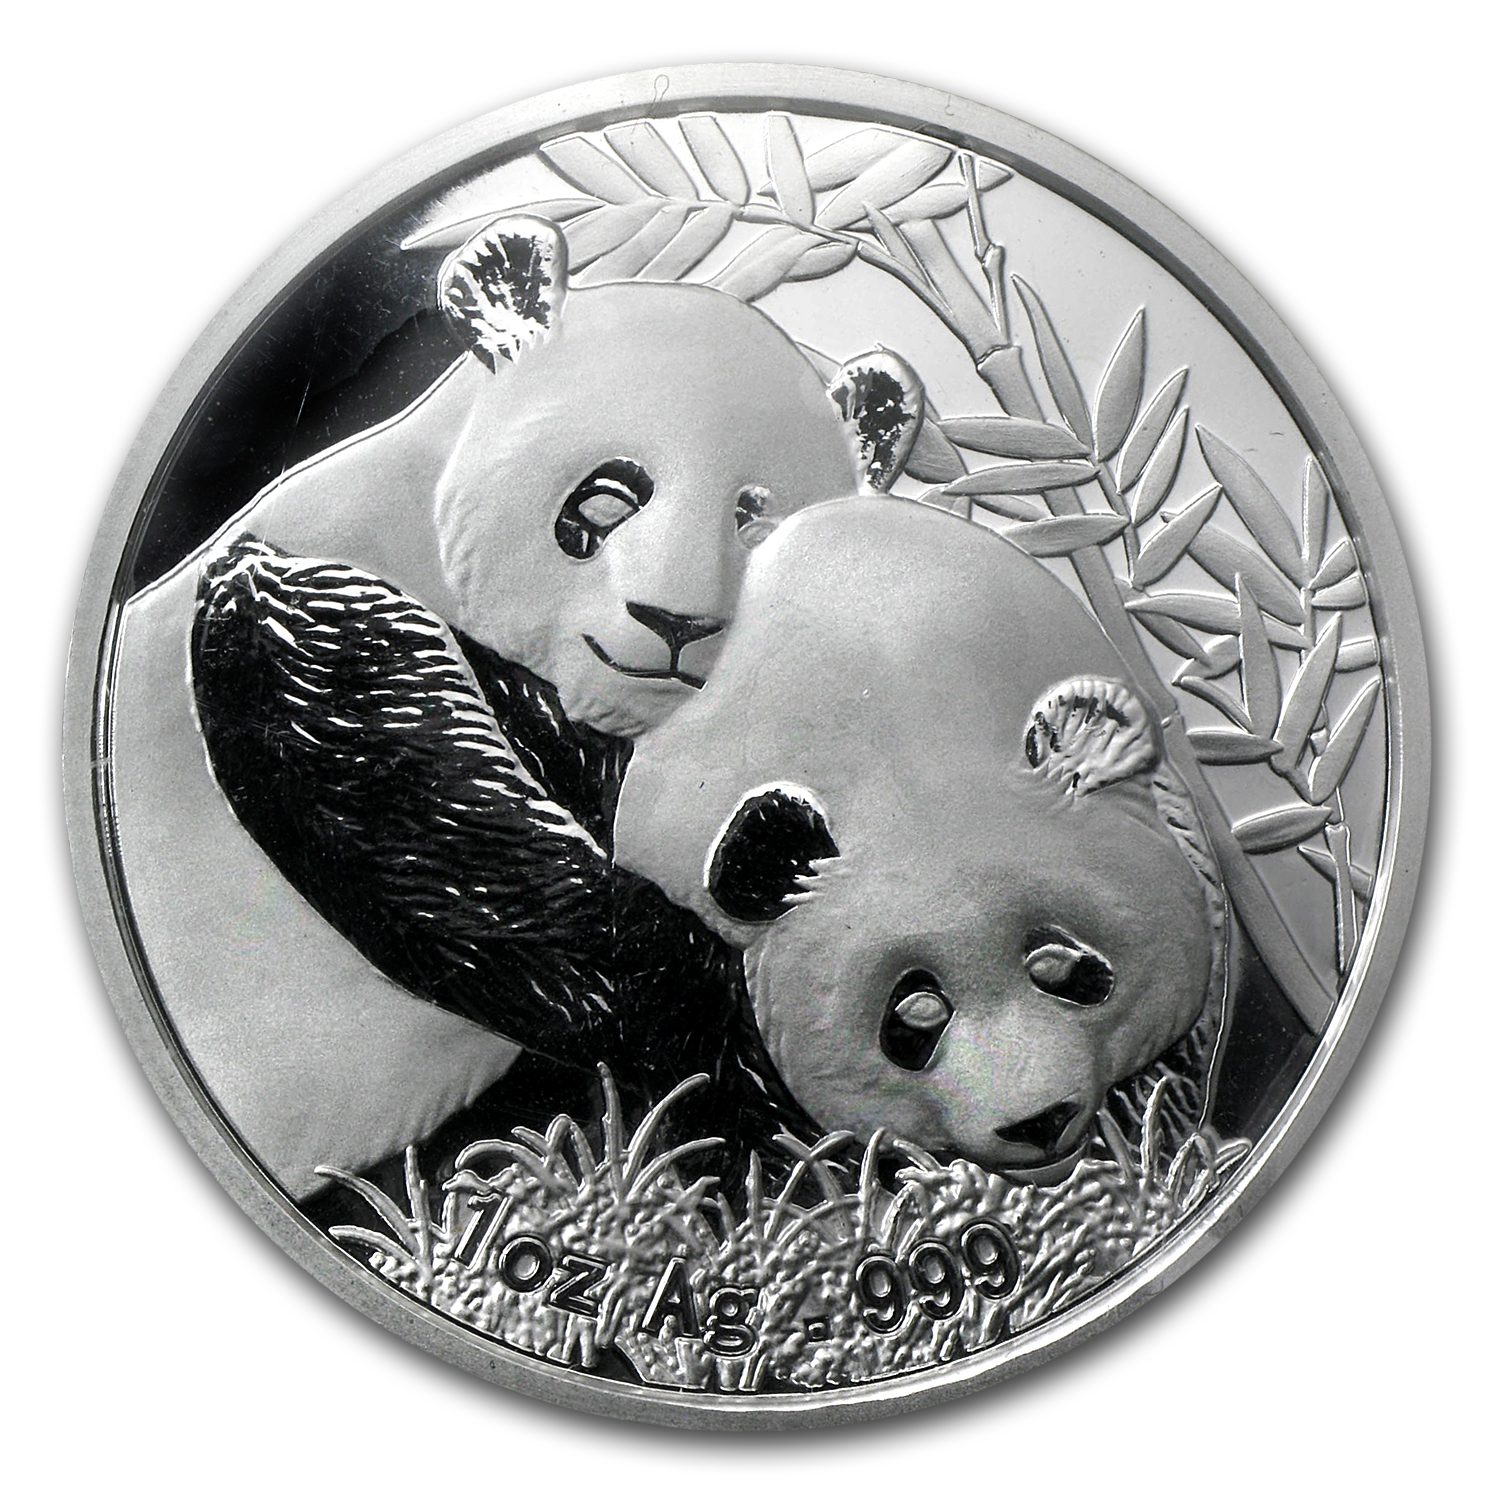 2012 1 oz Silver Chinese Panda Singapore Coin Fair with Box & CoA